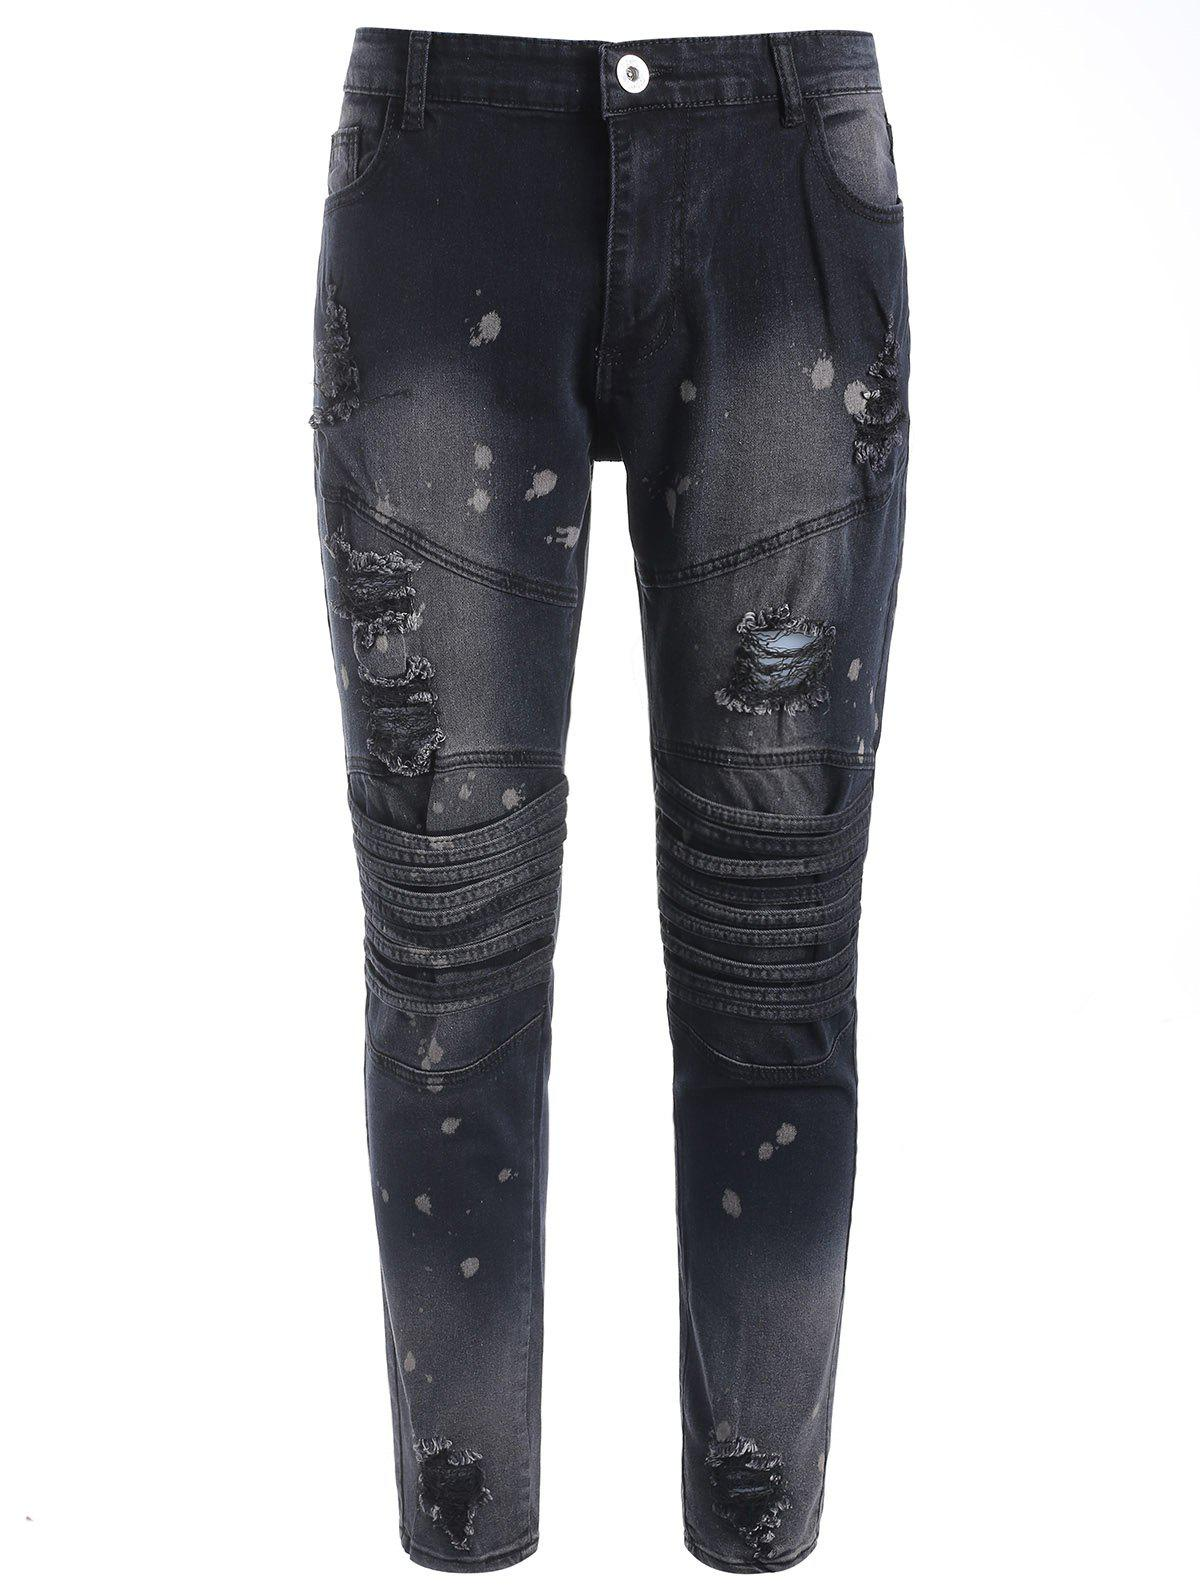 New Paint Splatter Ripped Zip Fly Jeans